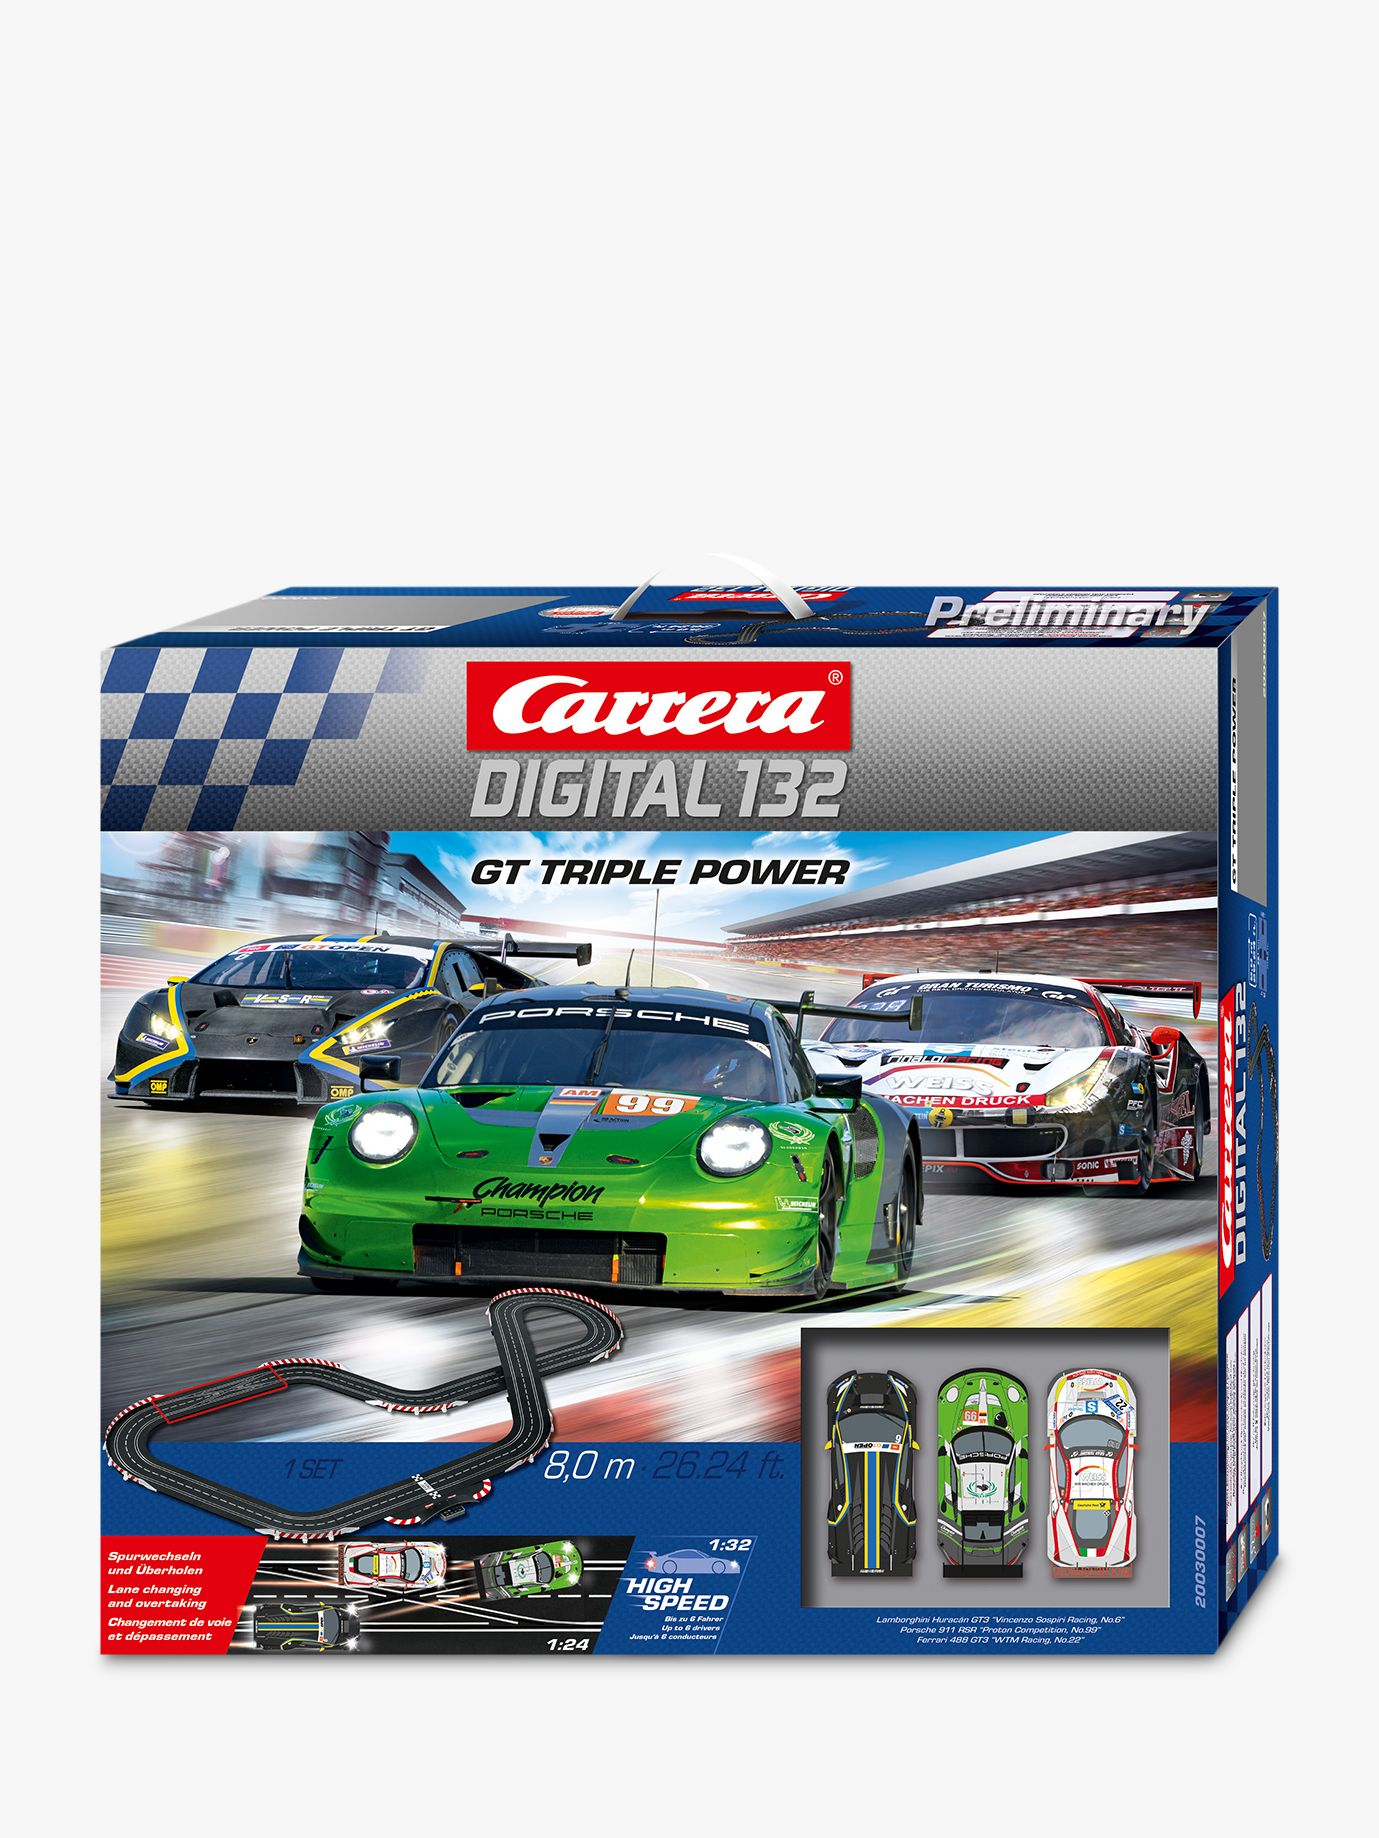 Carrera Carrera GT Triple Power Racing Track and Cars